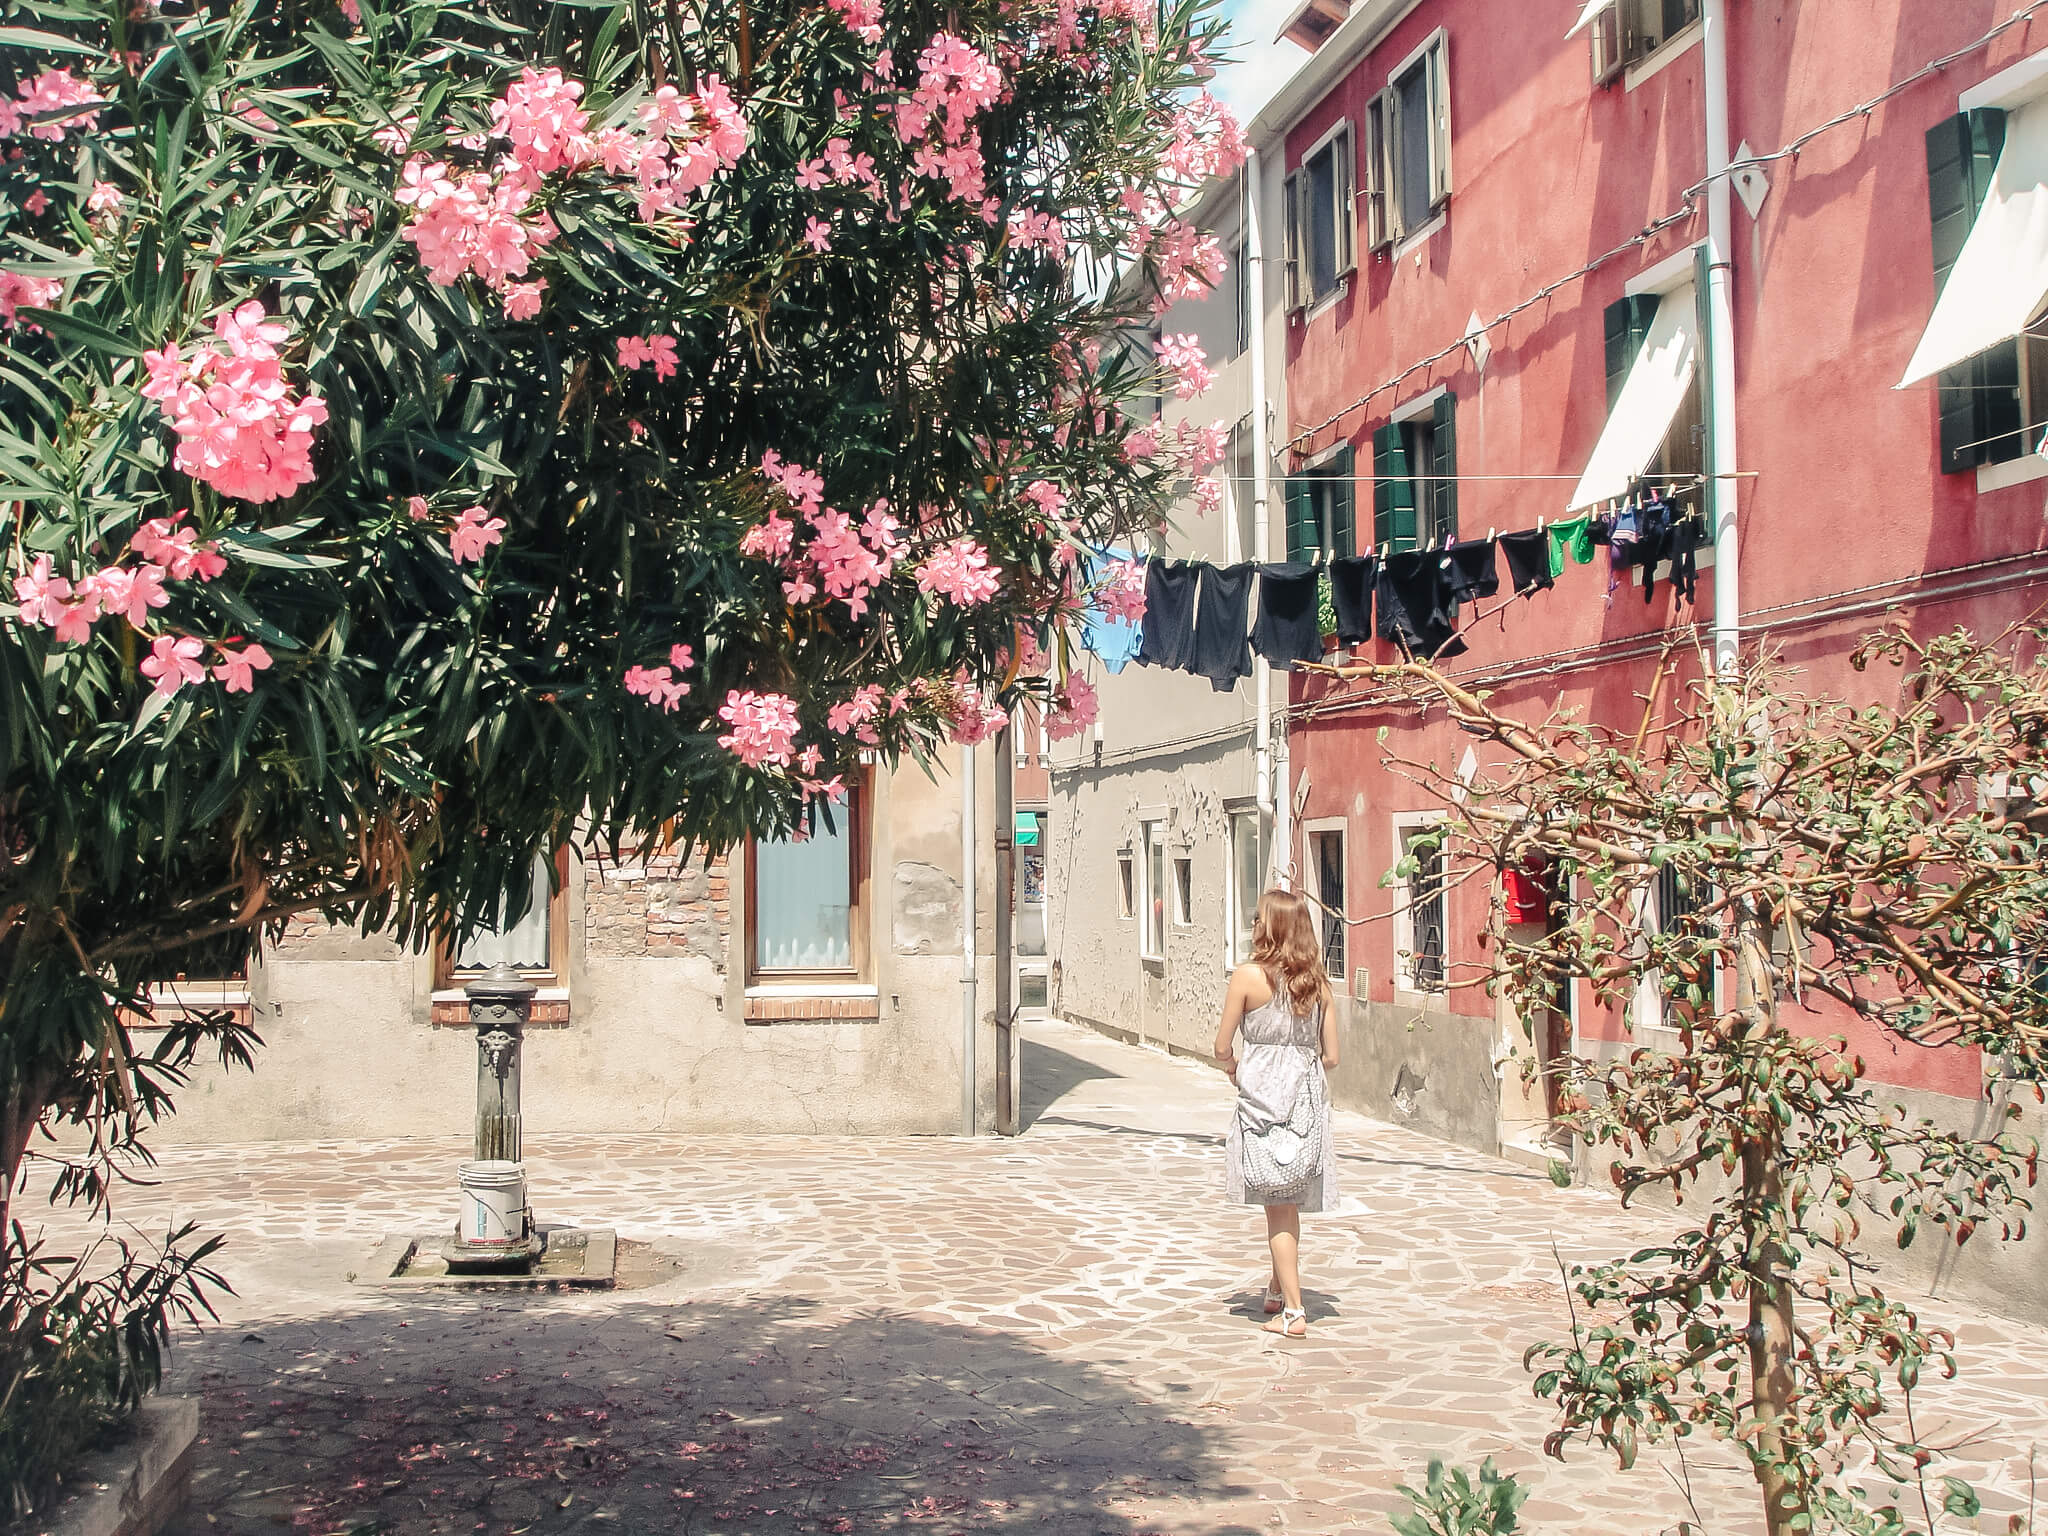 Sustainable and Vegan Lifestyle influencer shares her trip to Venezia!